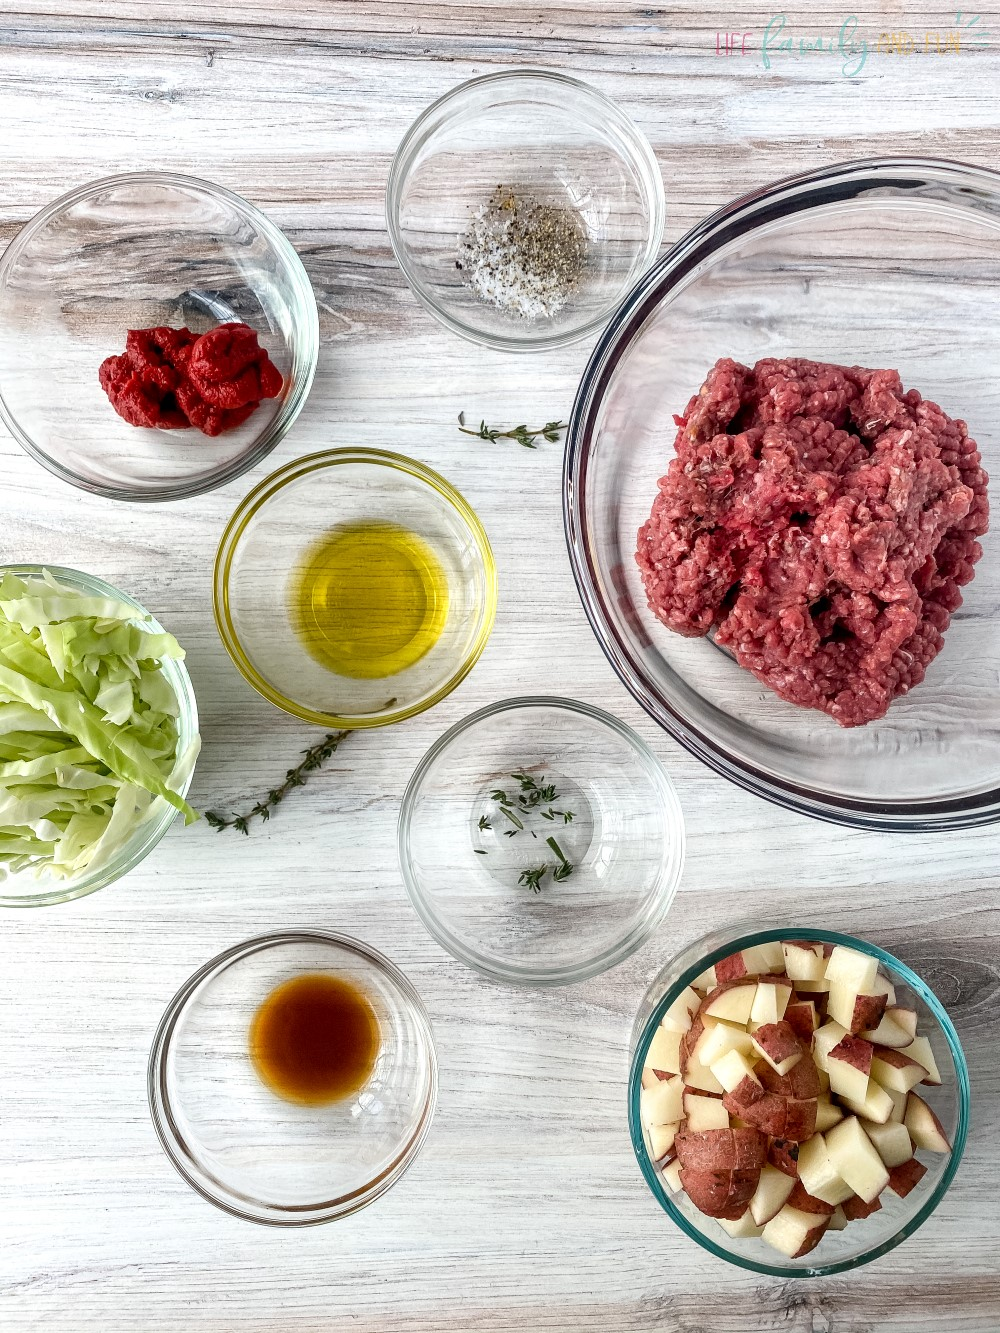 Ingredients for the meat pie